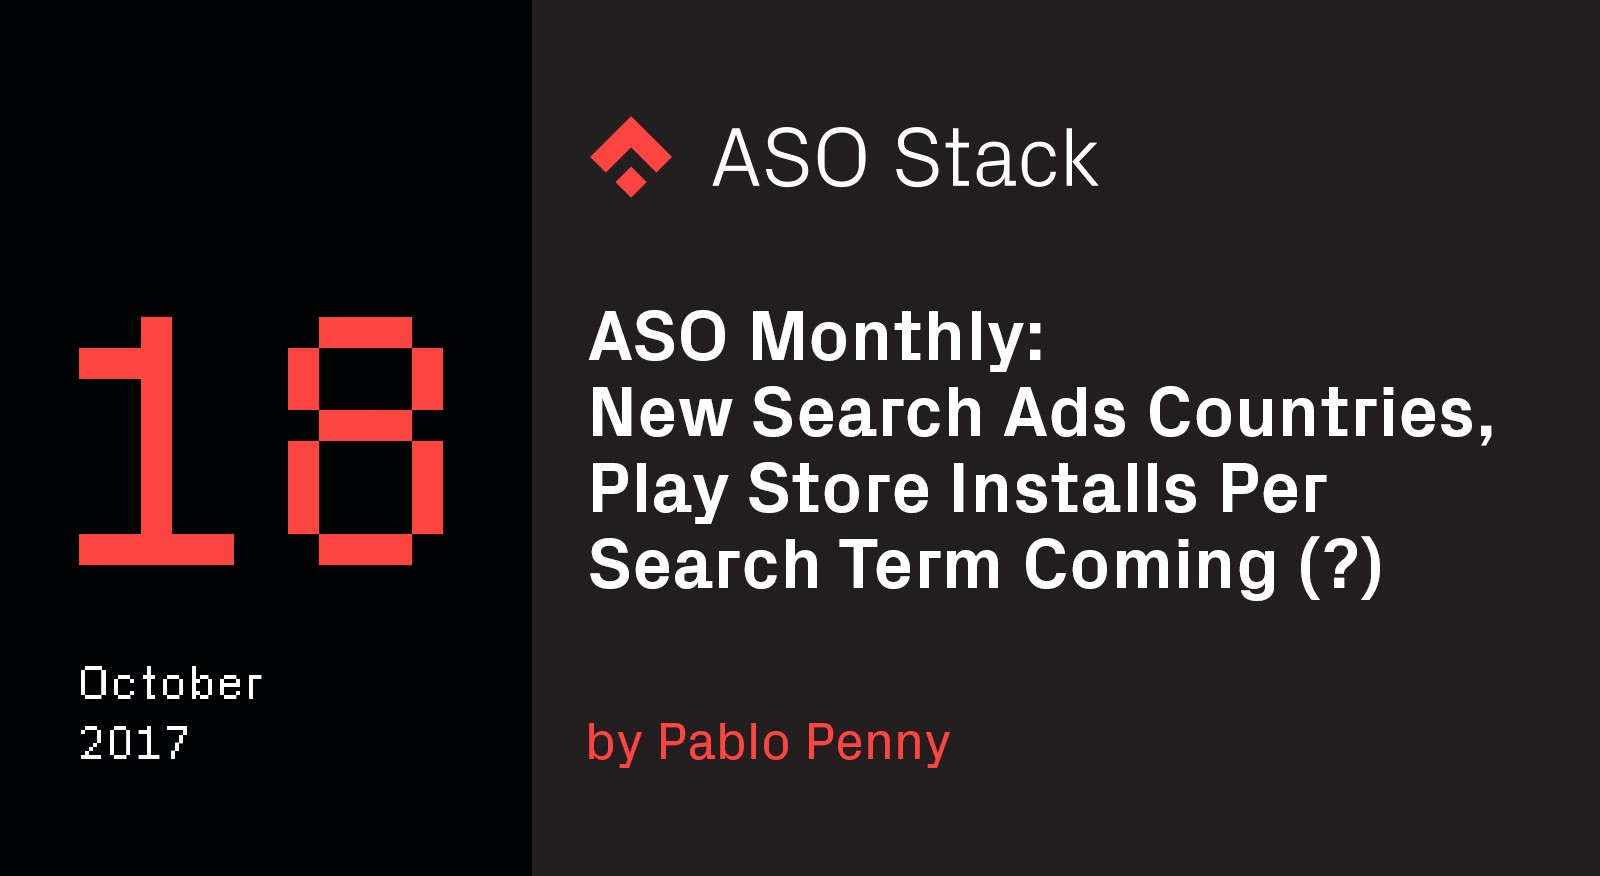 ASO Monthly #18 October 2017- New Search Ads Countries, Play Store Installs Per Search Term Coming (?) & More